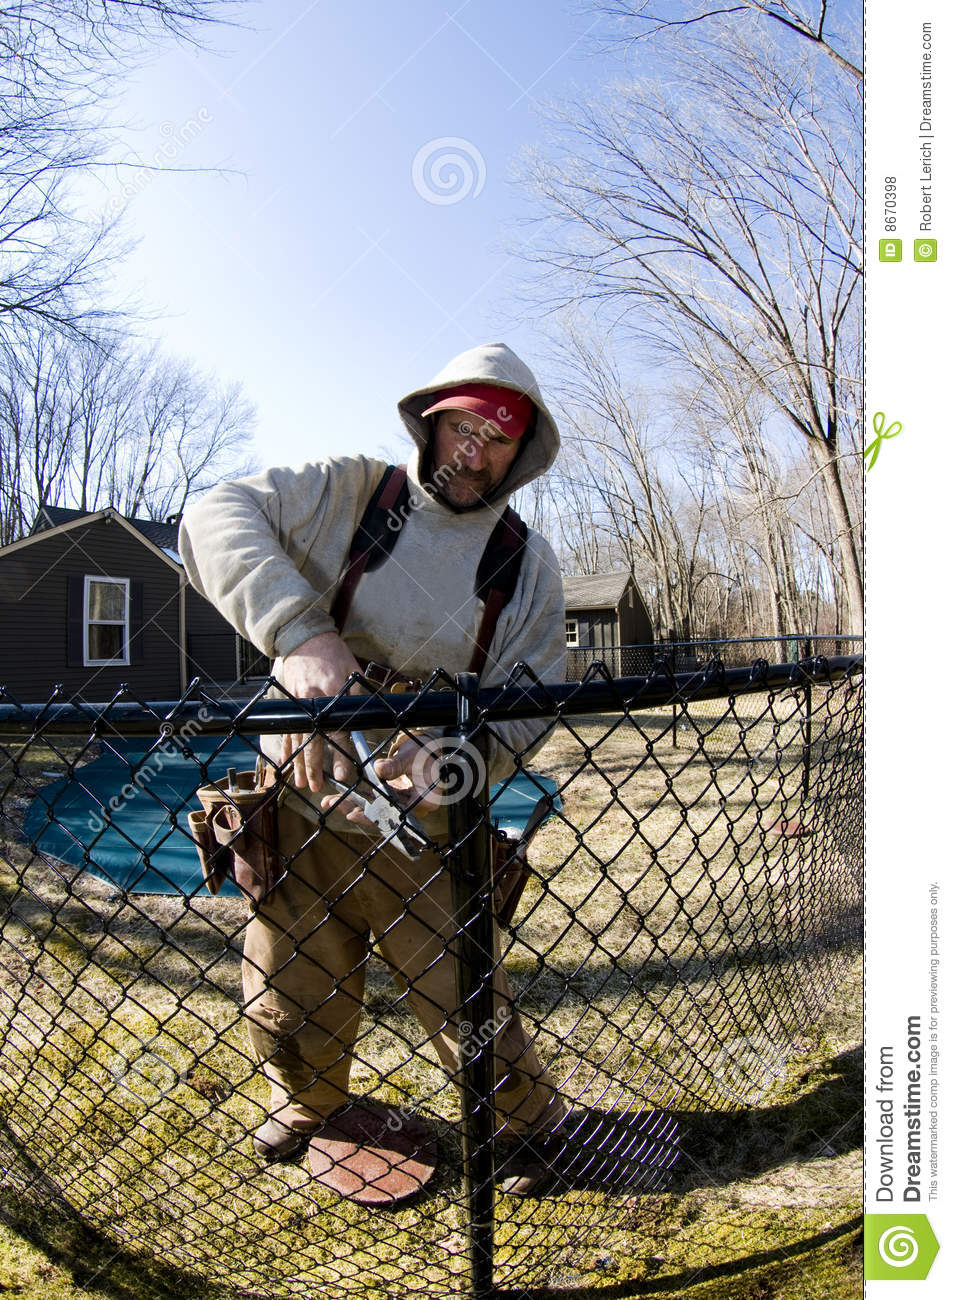 Workman repairing building chain link fence stock